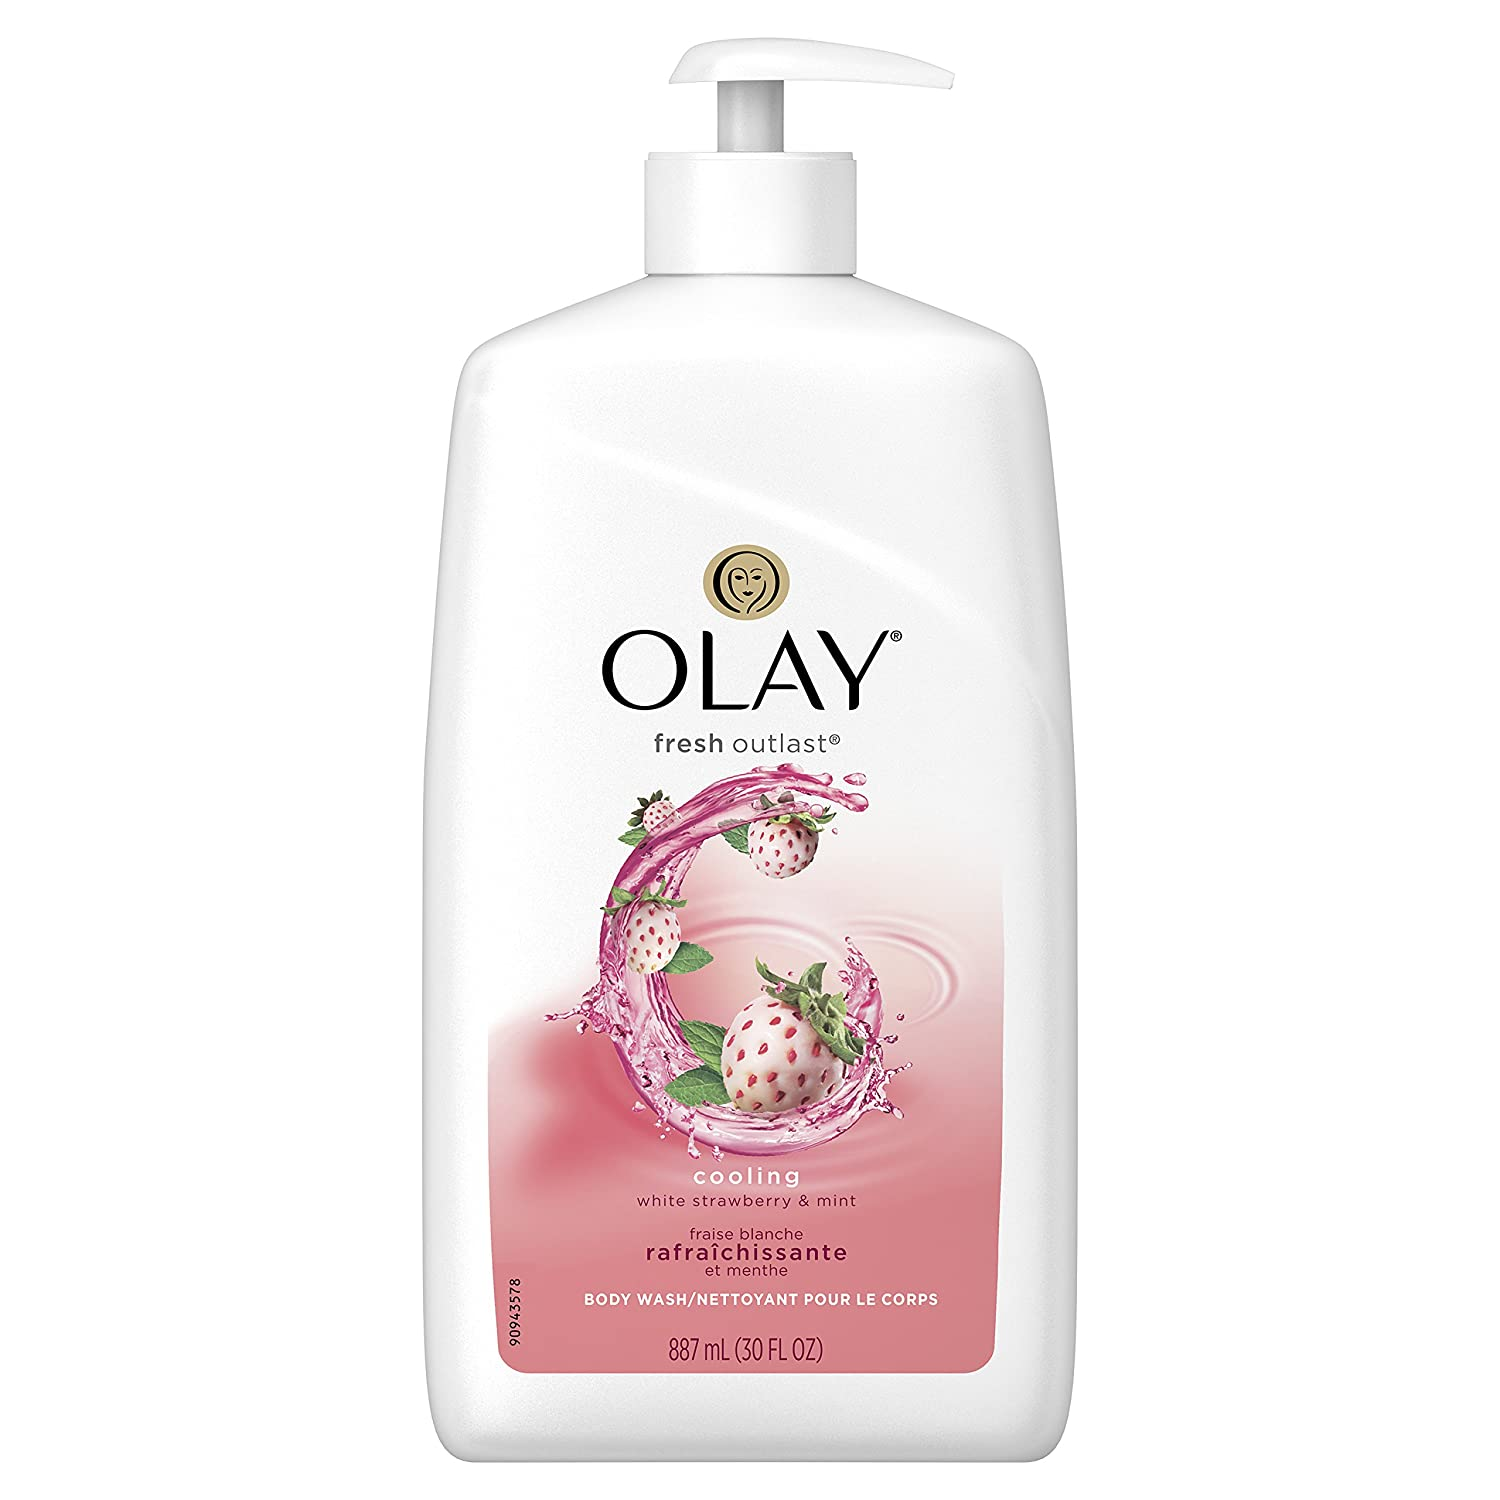 Olay Fresh Outlast Cooling White Strawberry & Mint Body Wash with Pump, 30 Fluid Ounce